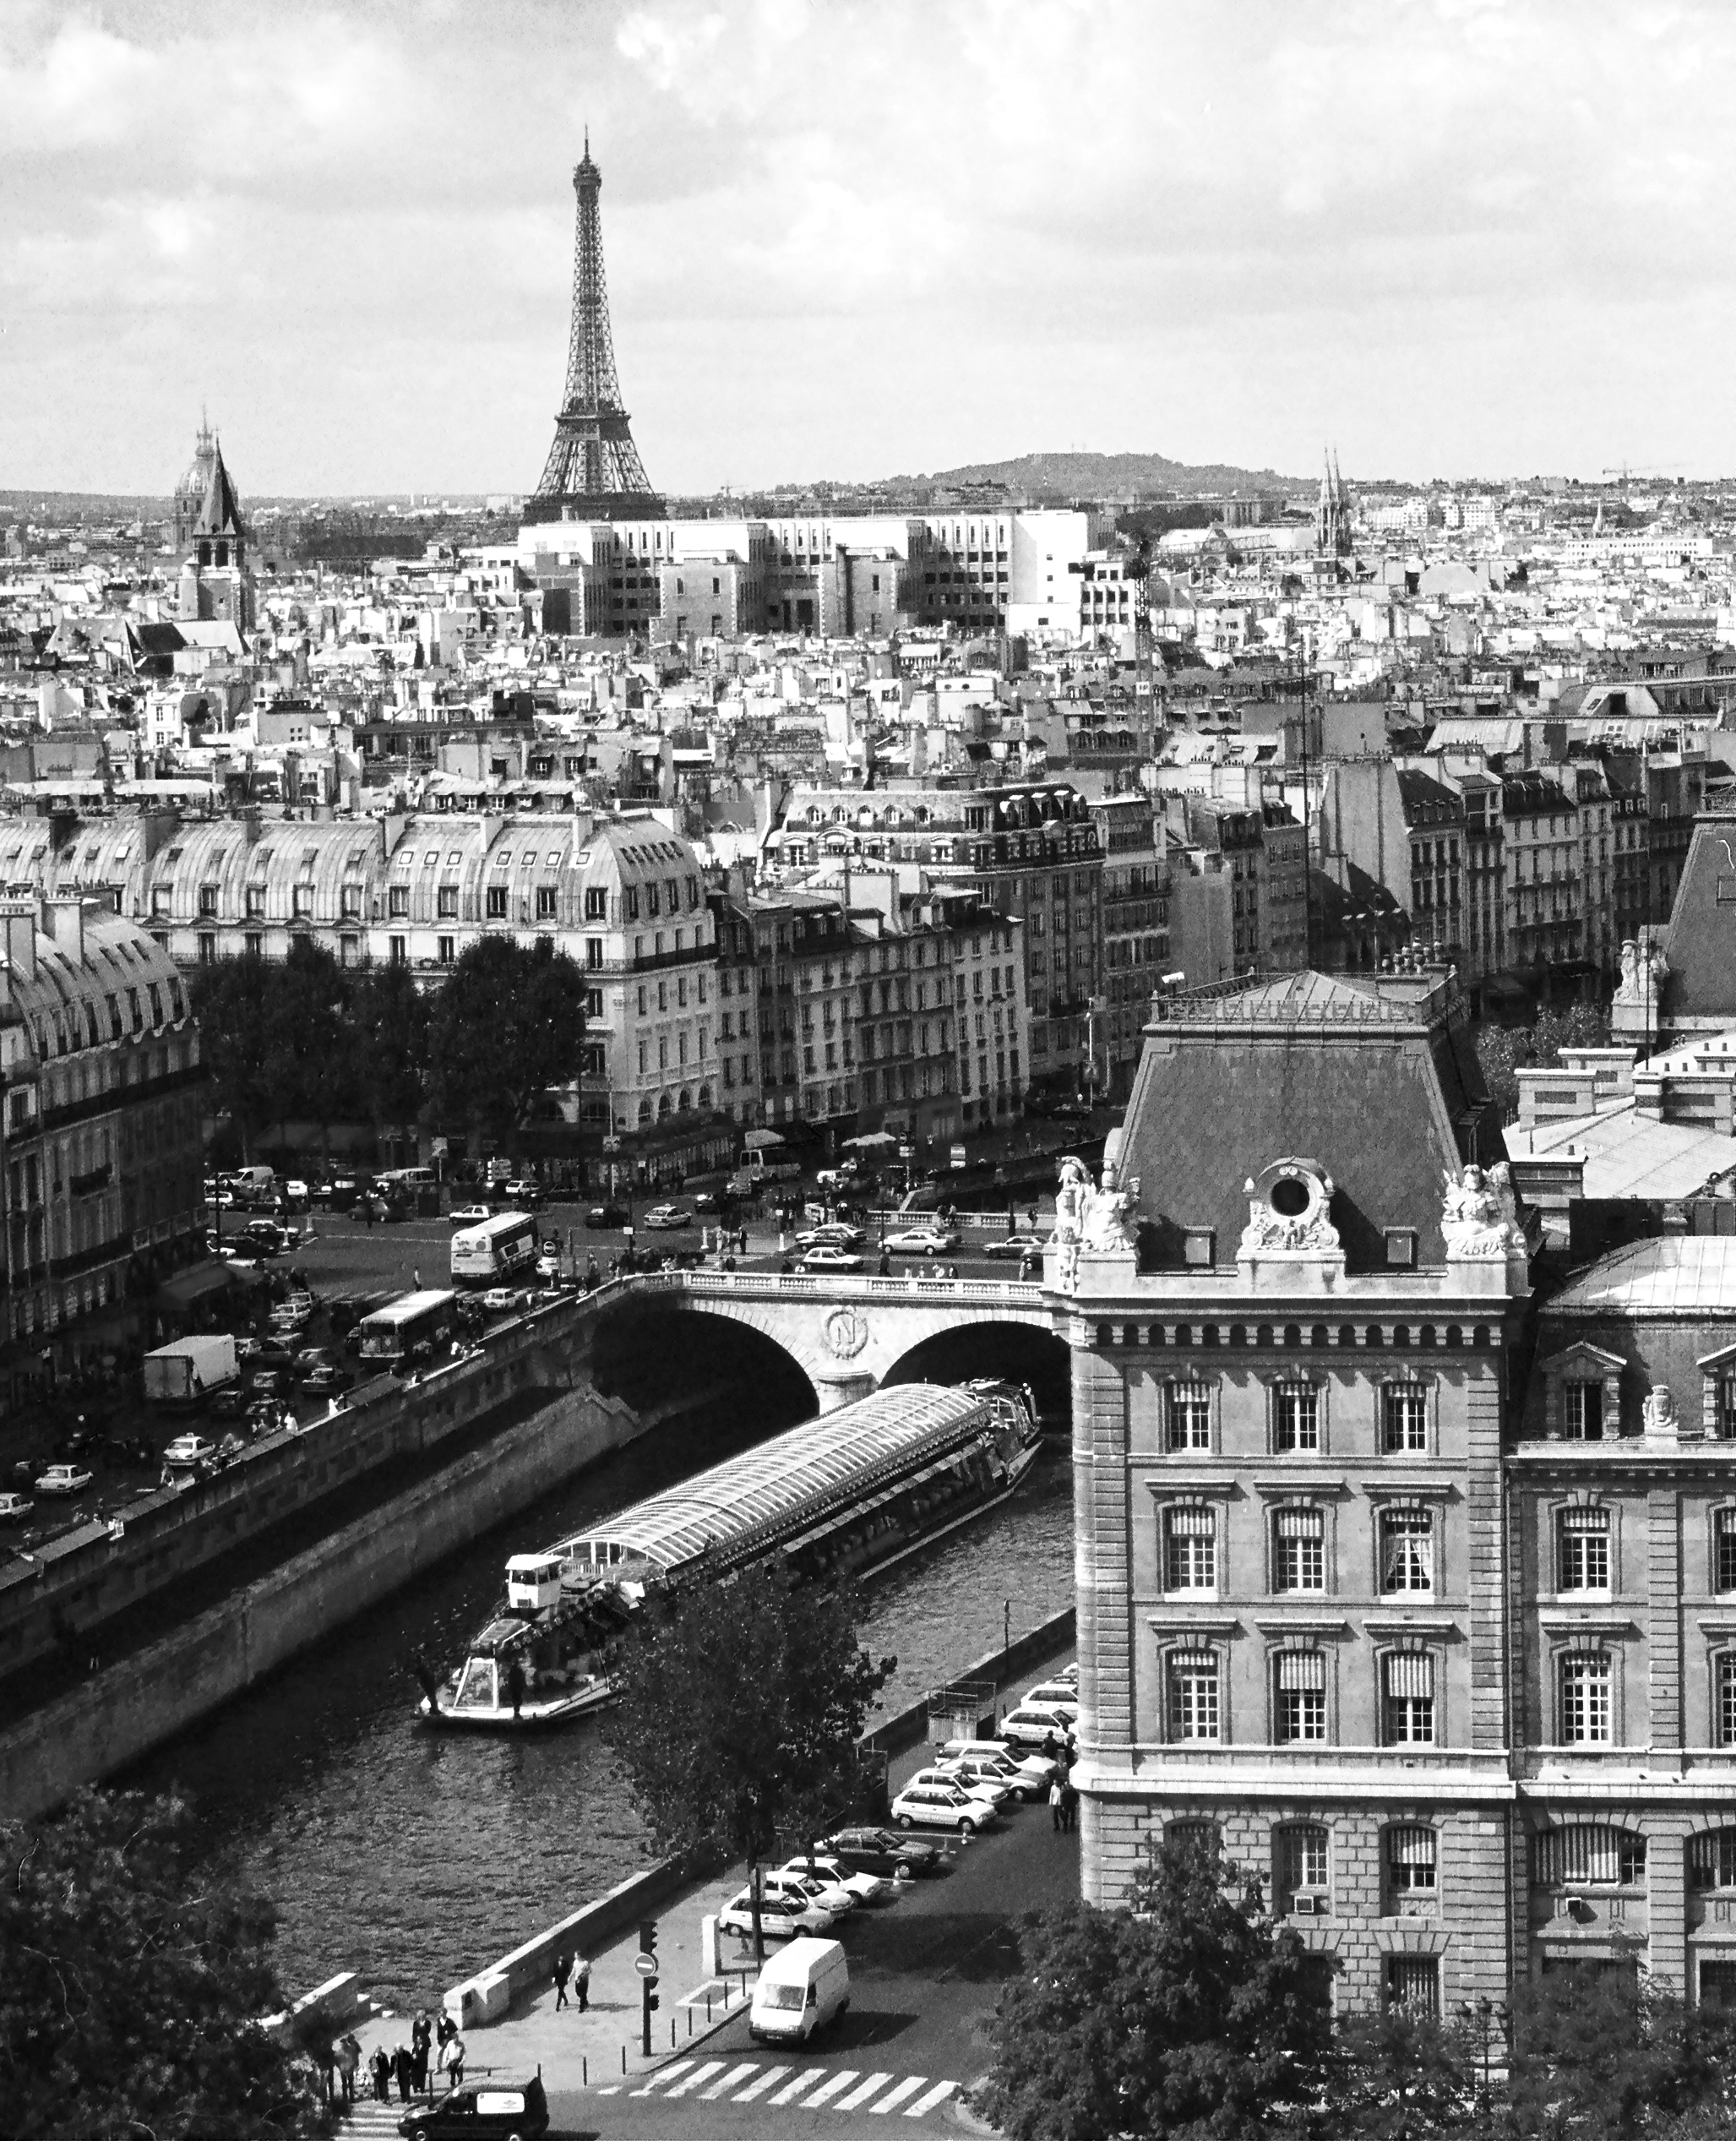 85-Paris-View of Eiffel Tower-Very clear BW